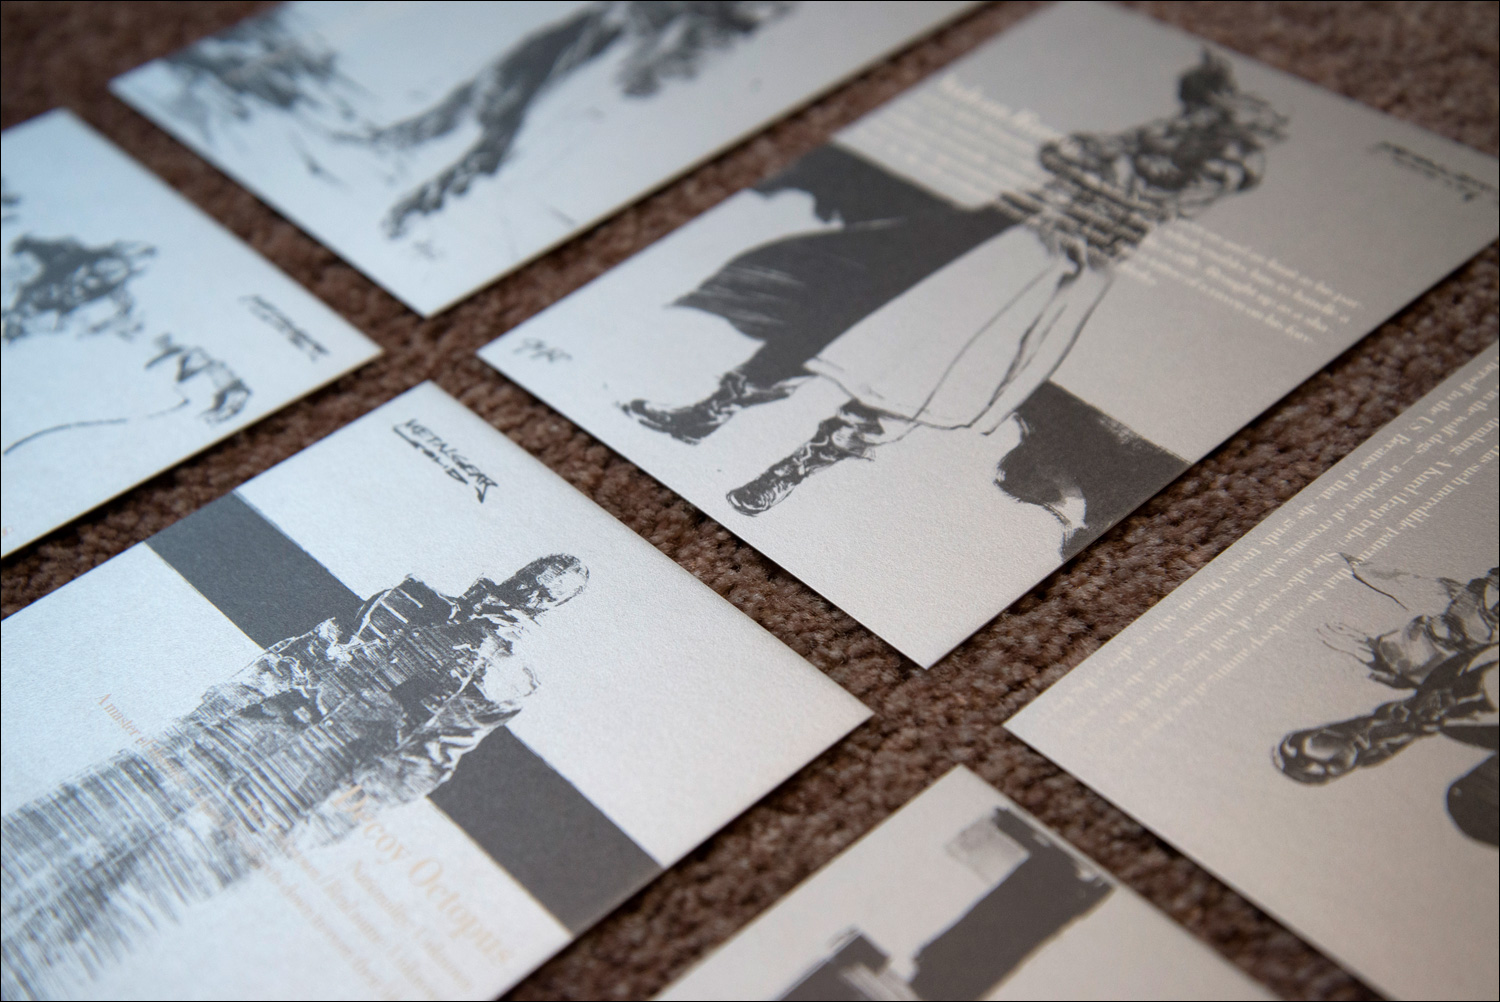 Metal-Gear-Solid-Premium-Package-Postcards-Close